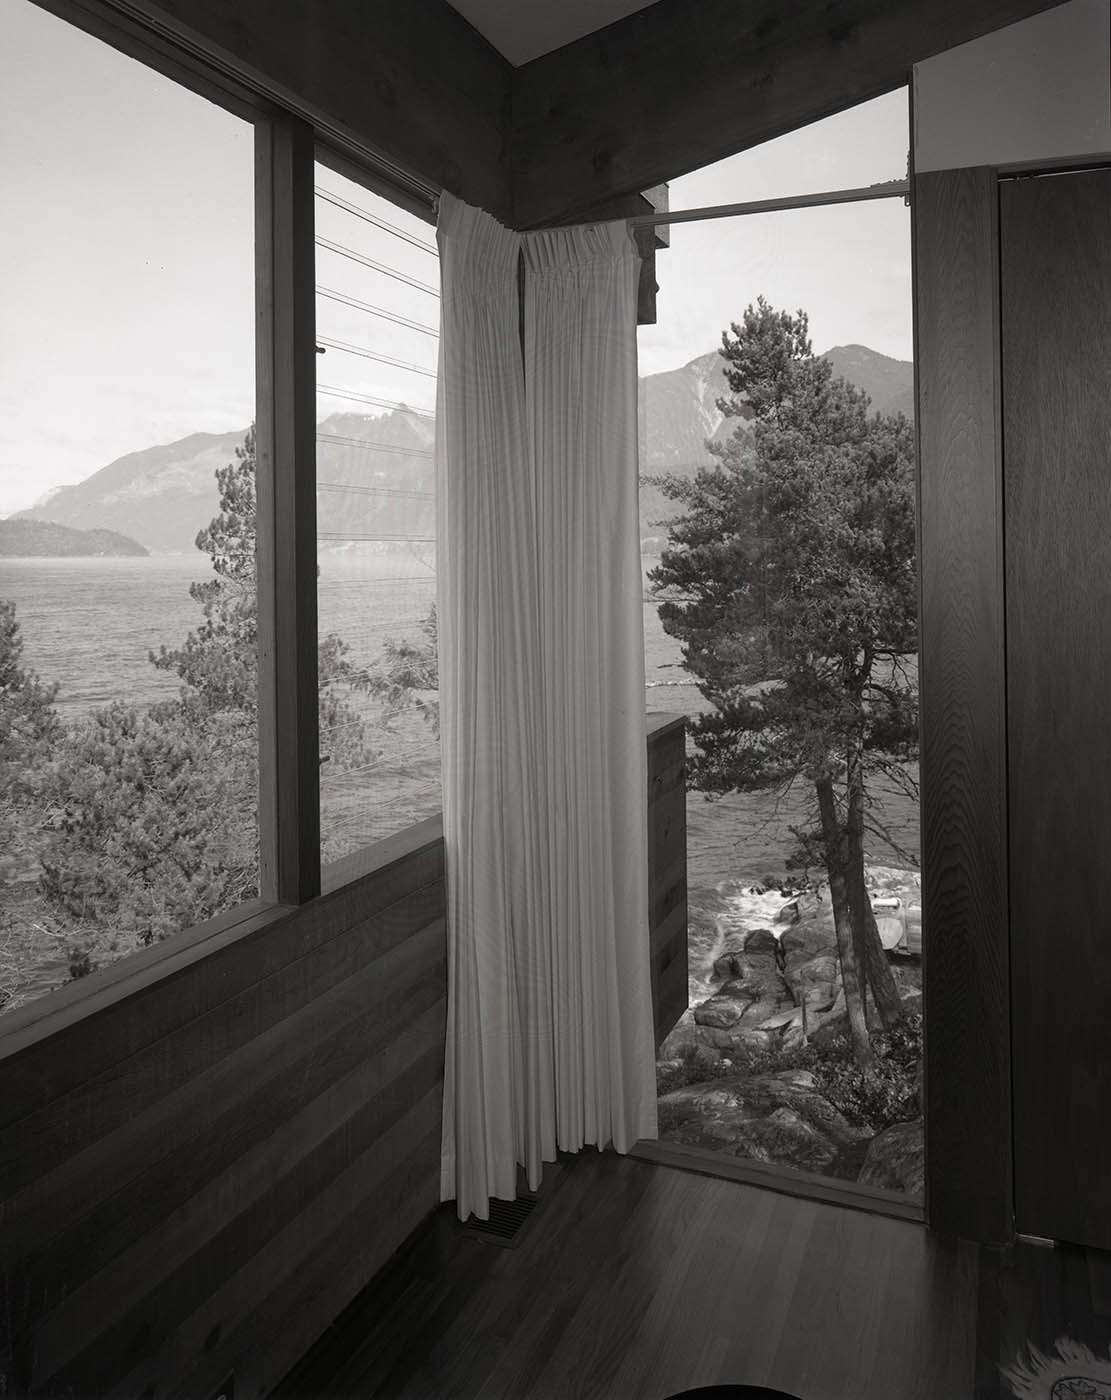 Views from the Anton Residence (Erickson and Massey), Photo by Fred Schiffer, 1967.